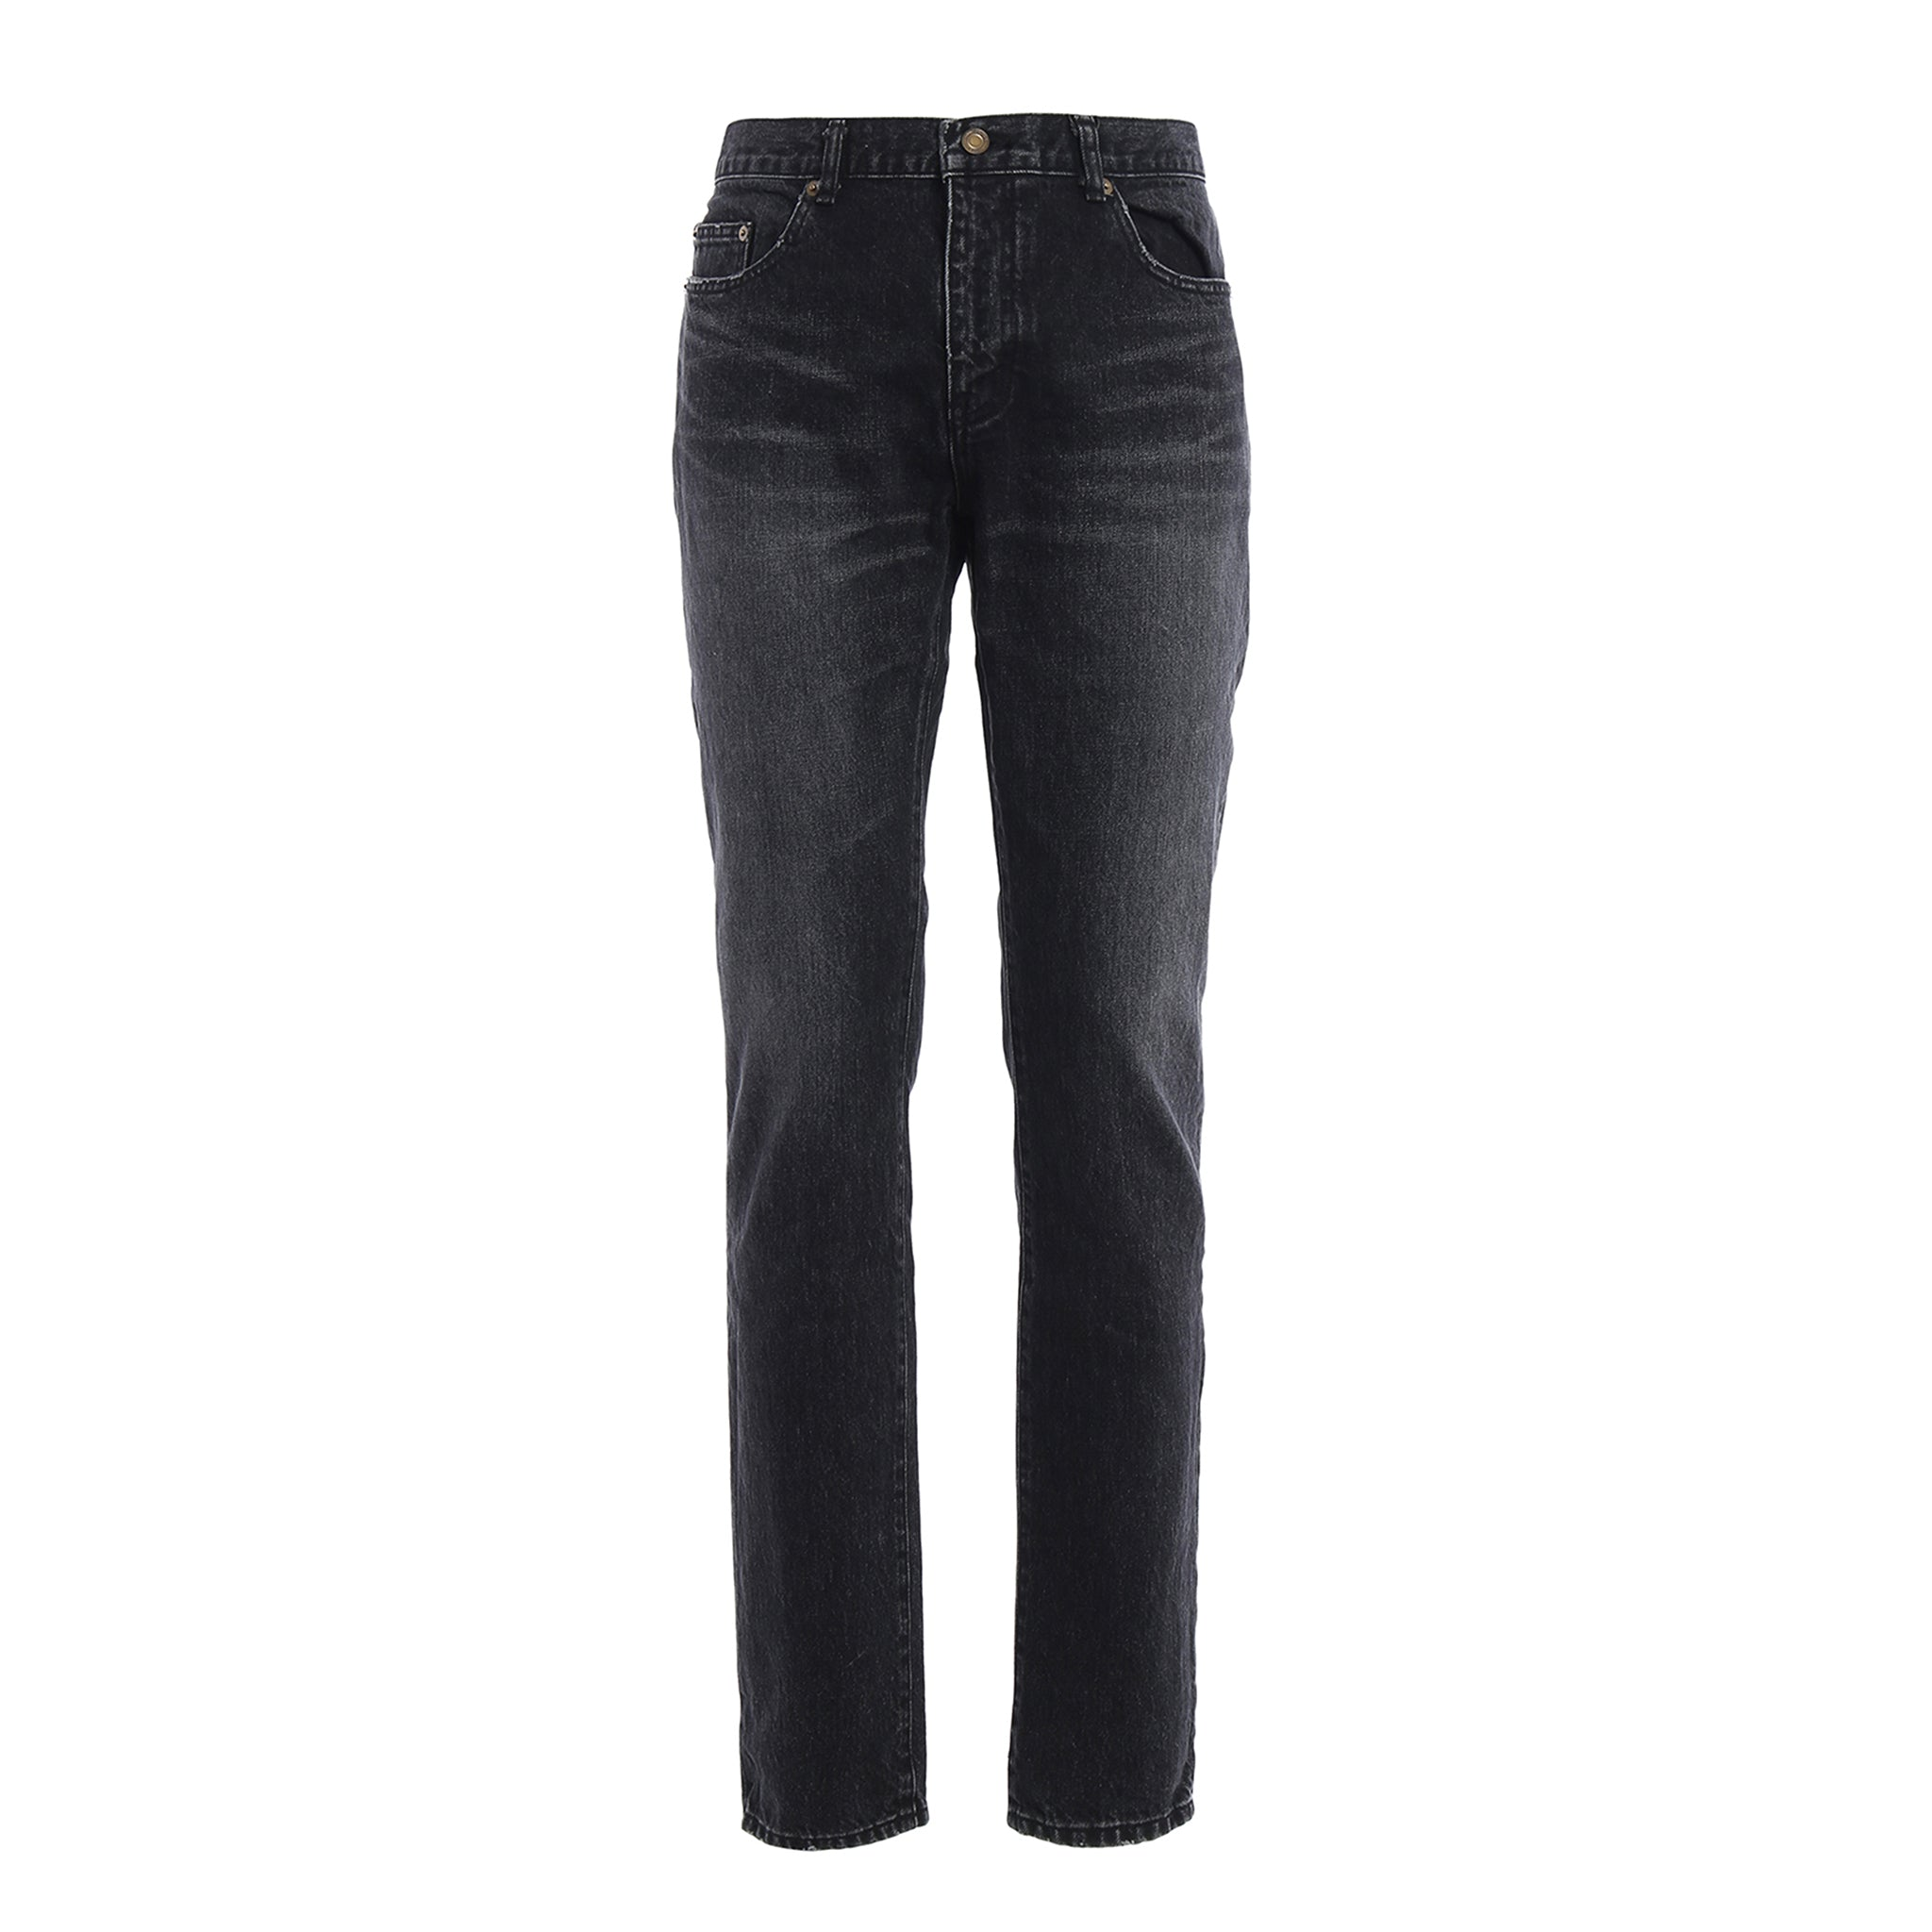 Yves Saint Laurent Light Wash Denim Jeans